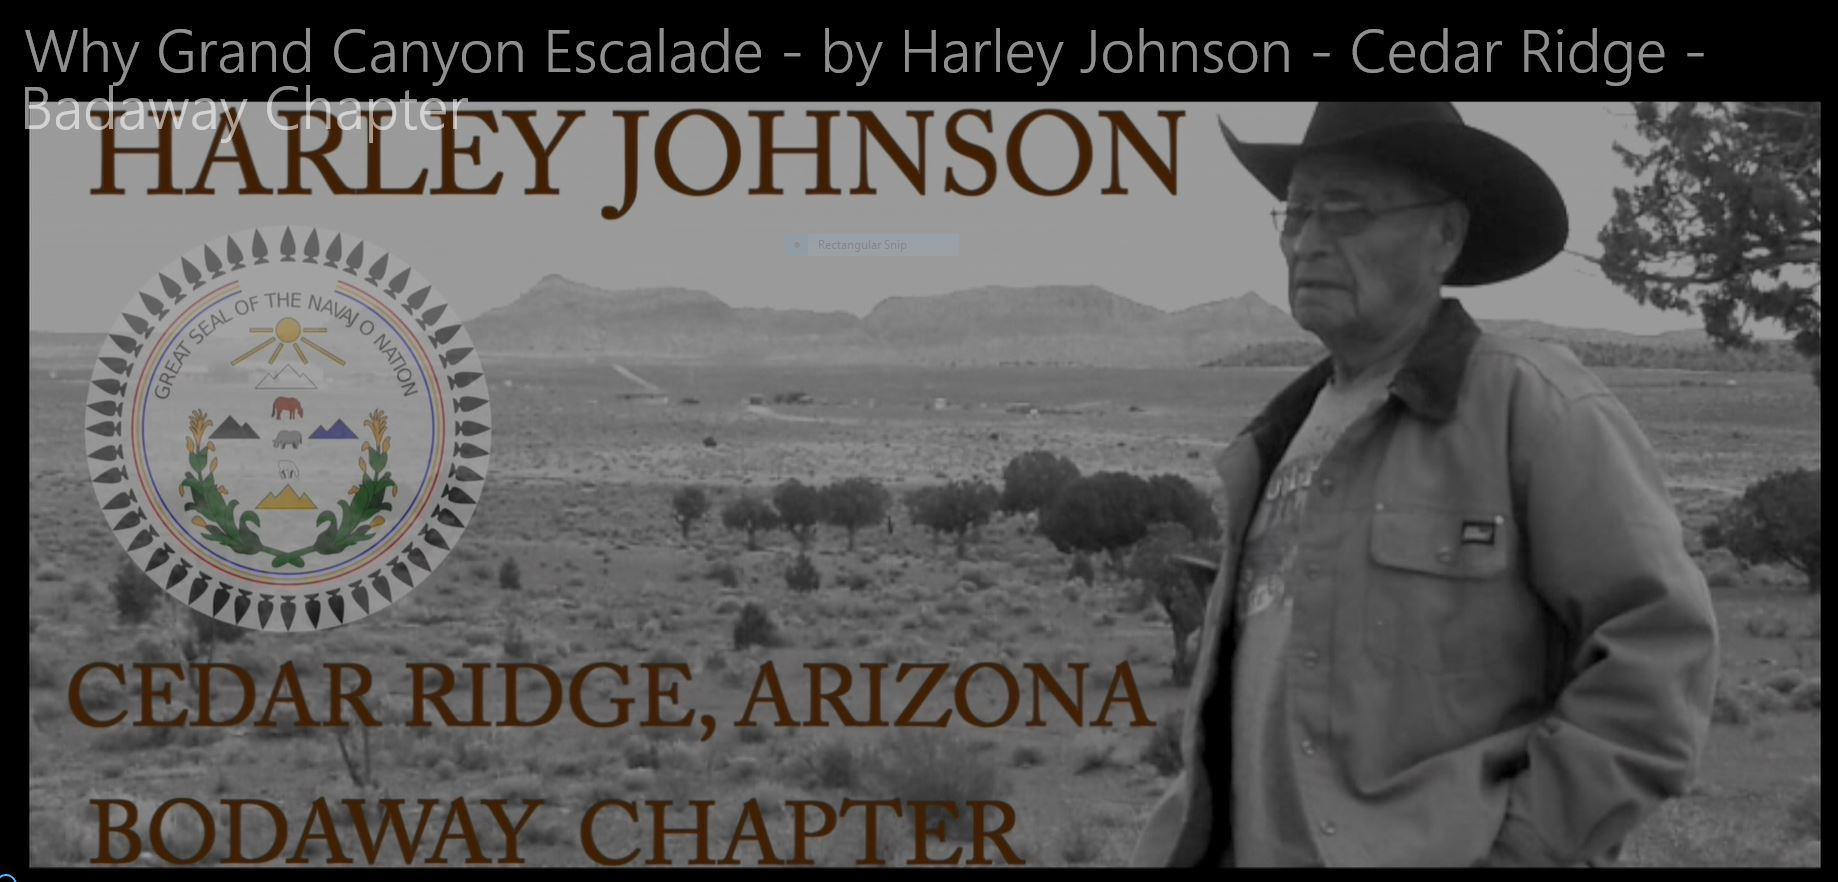 Why Grand Canyon Escalade? – a response by Harley Johnson, Cedar Ridge, AZ